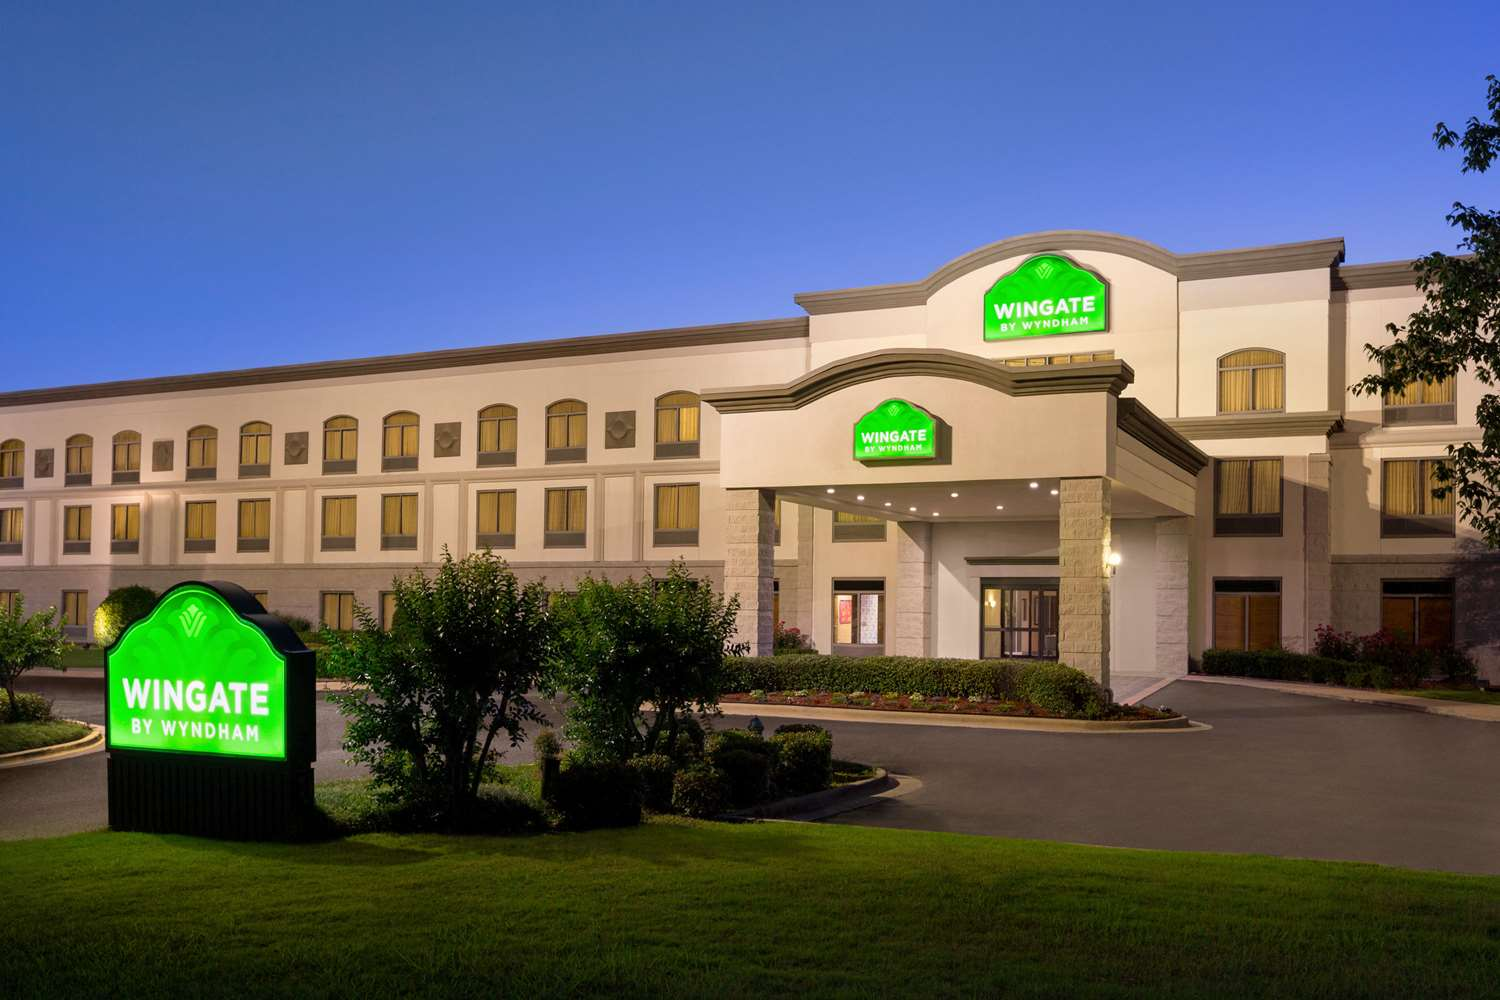 Wingate by Wyndham Hotel Montgomery